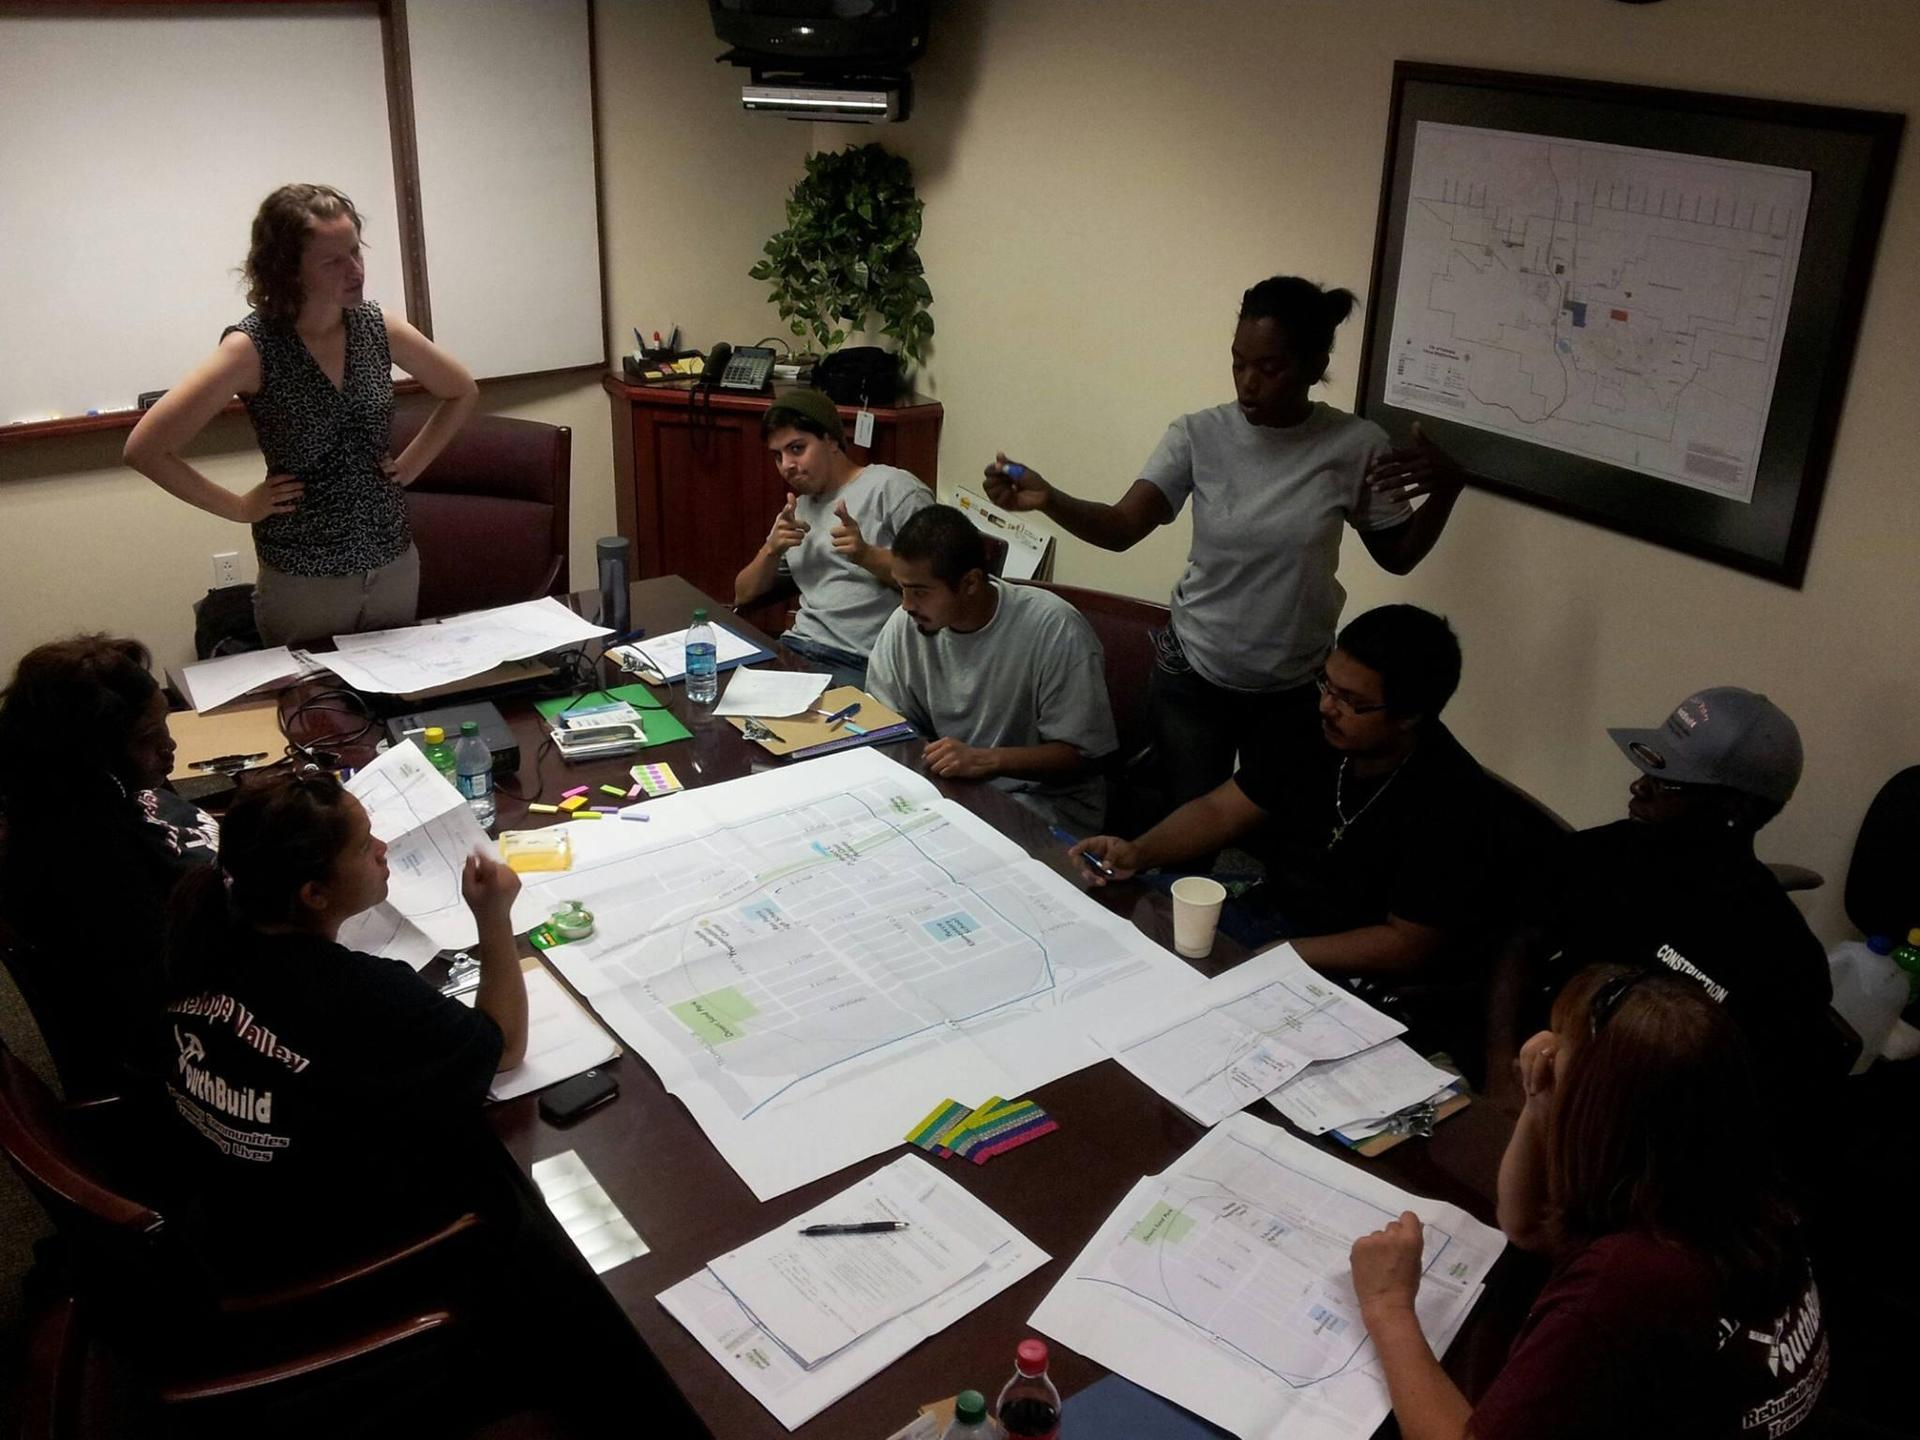 Palmdale students meet with city planners